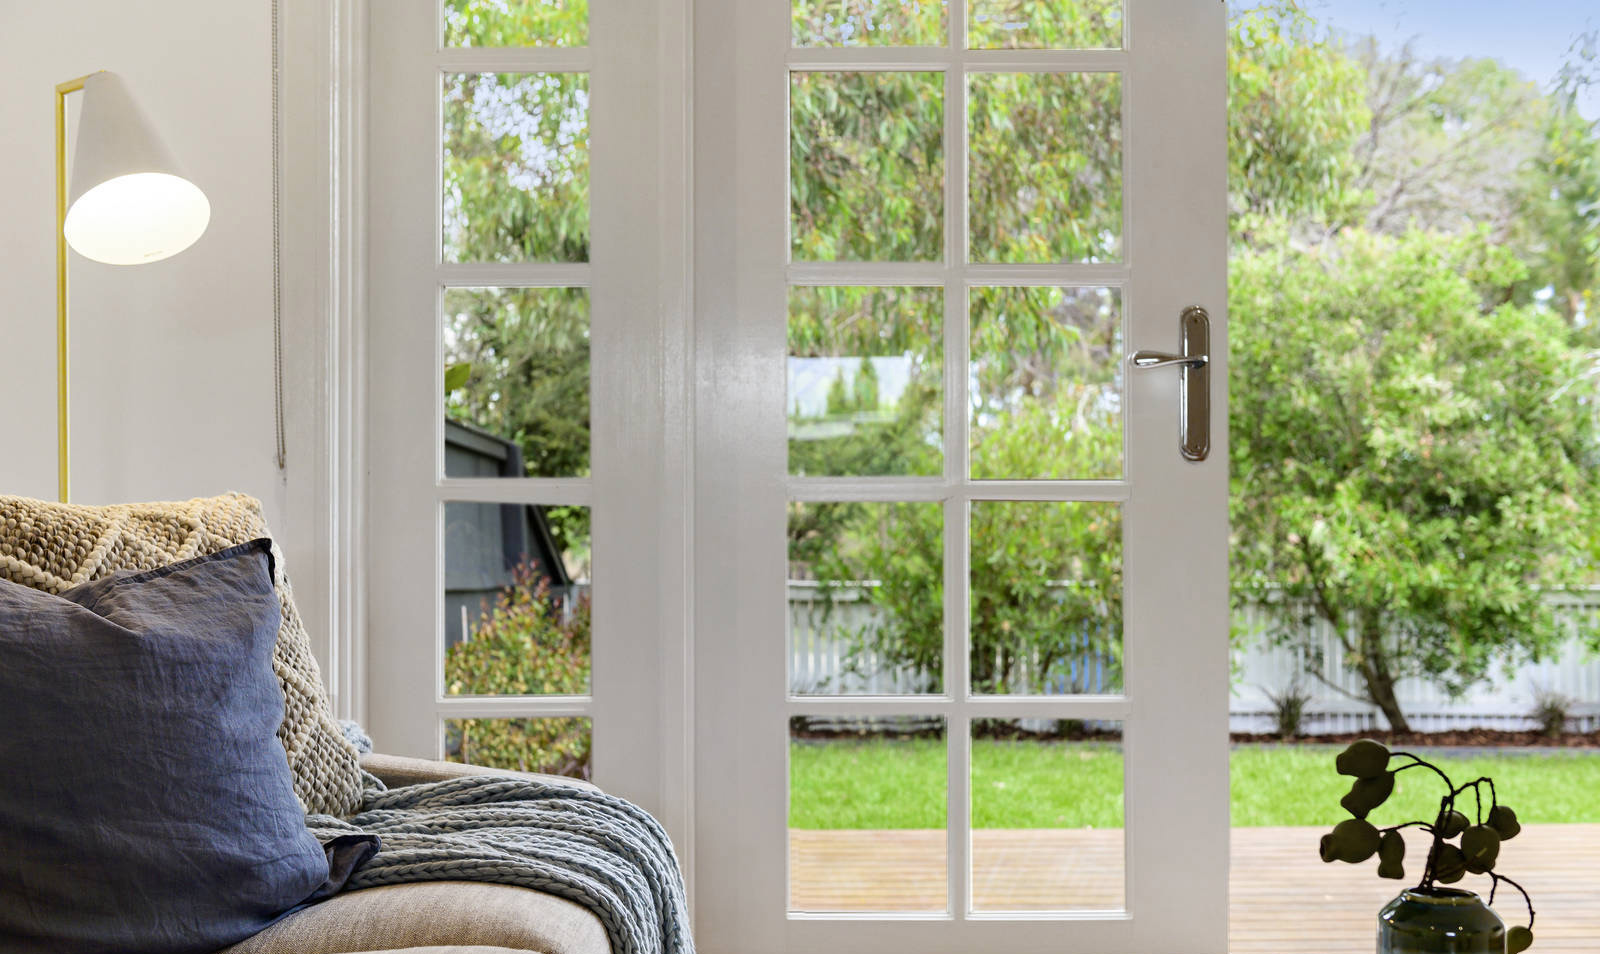 How to prep your home for sale in stage 4 lockdown